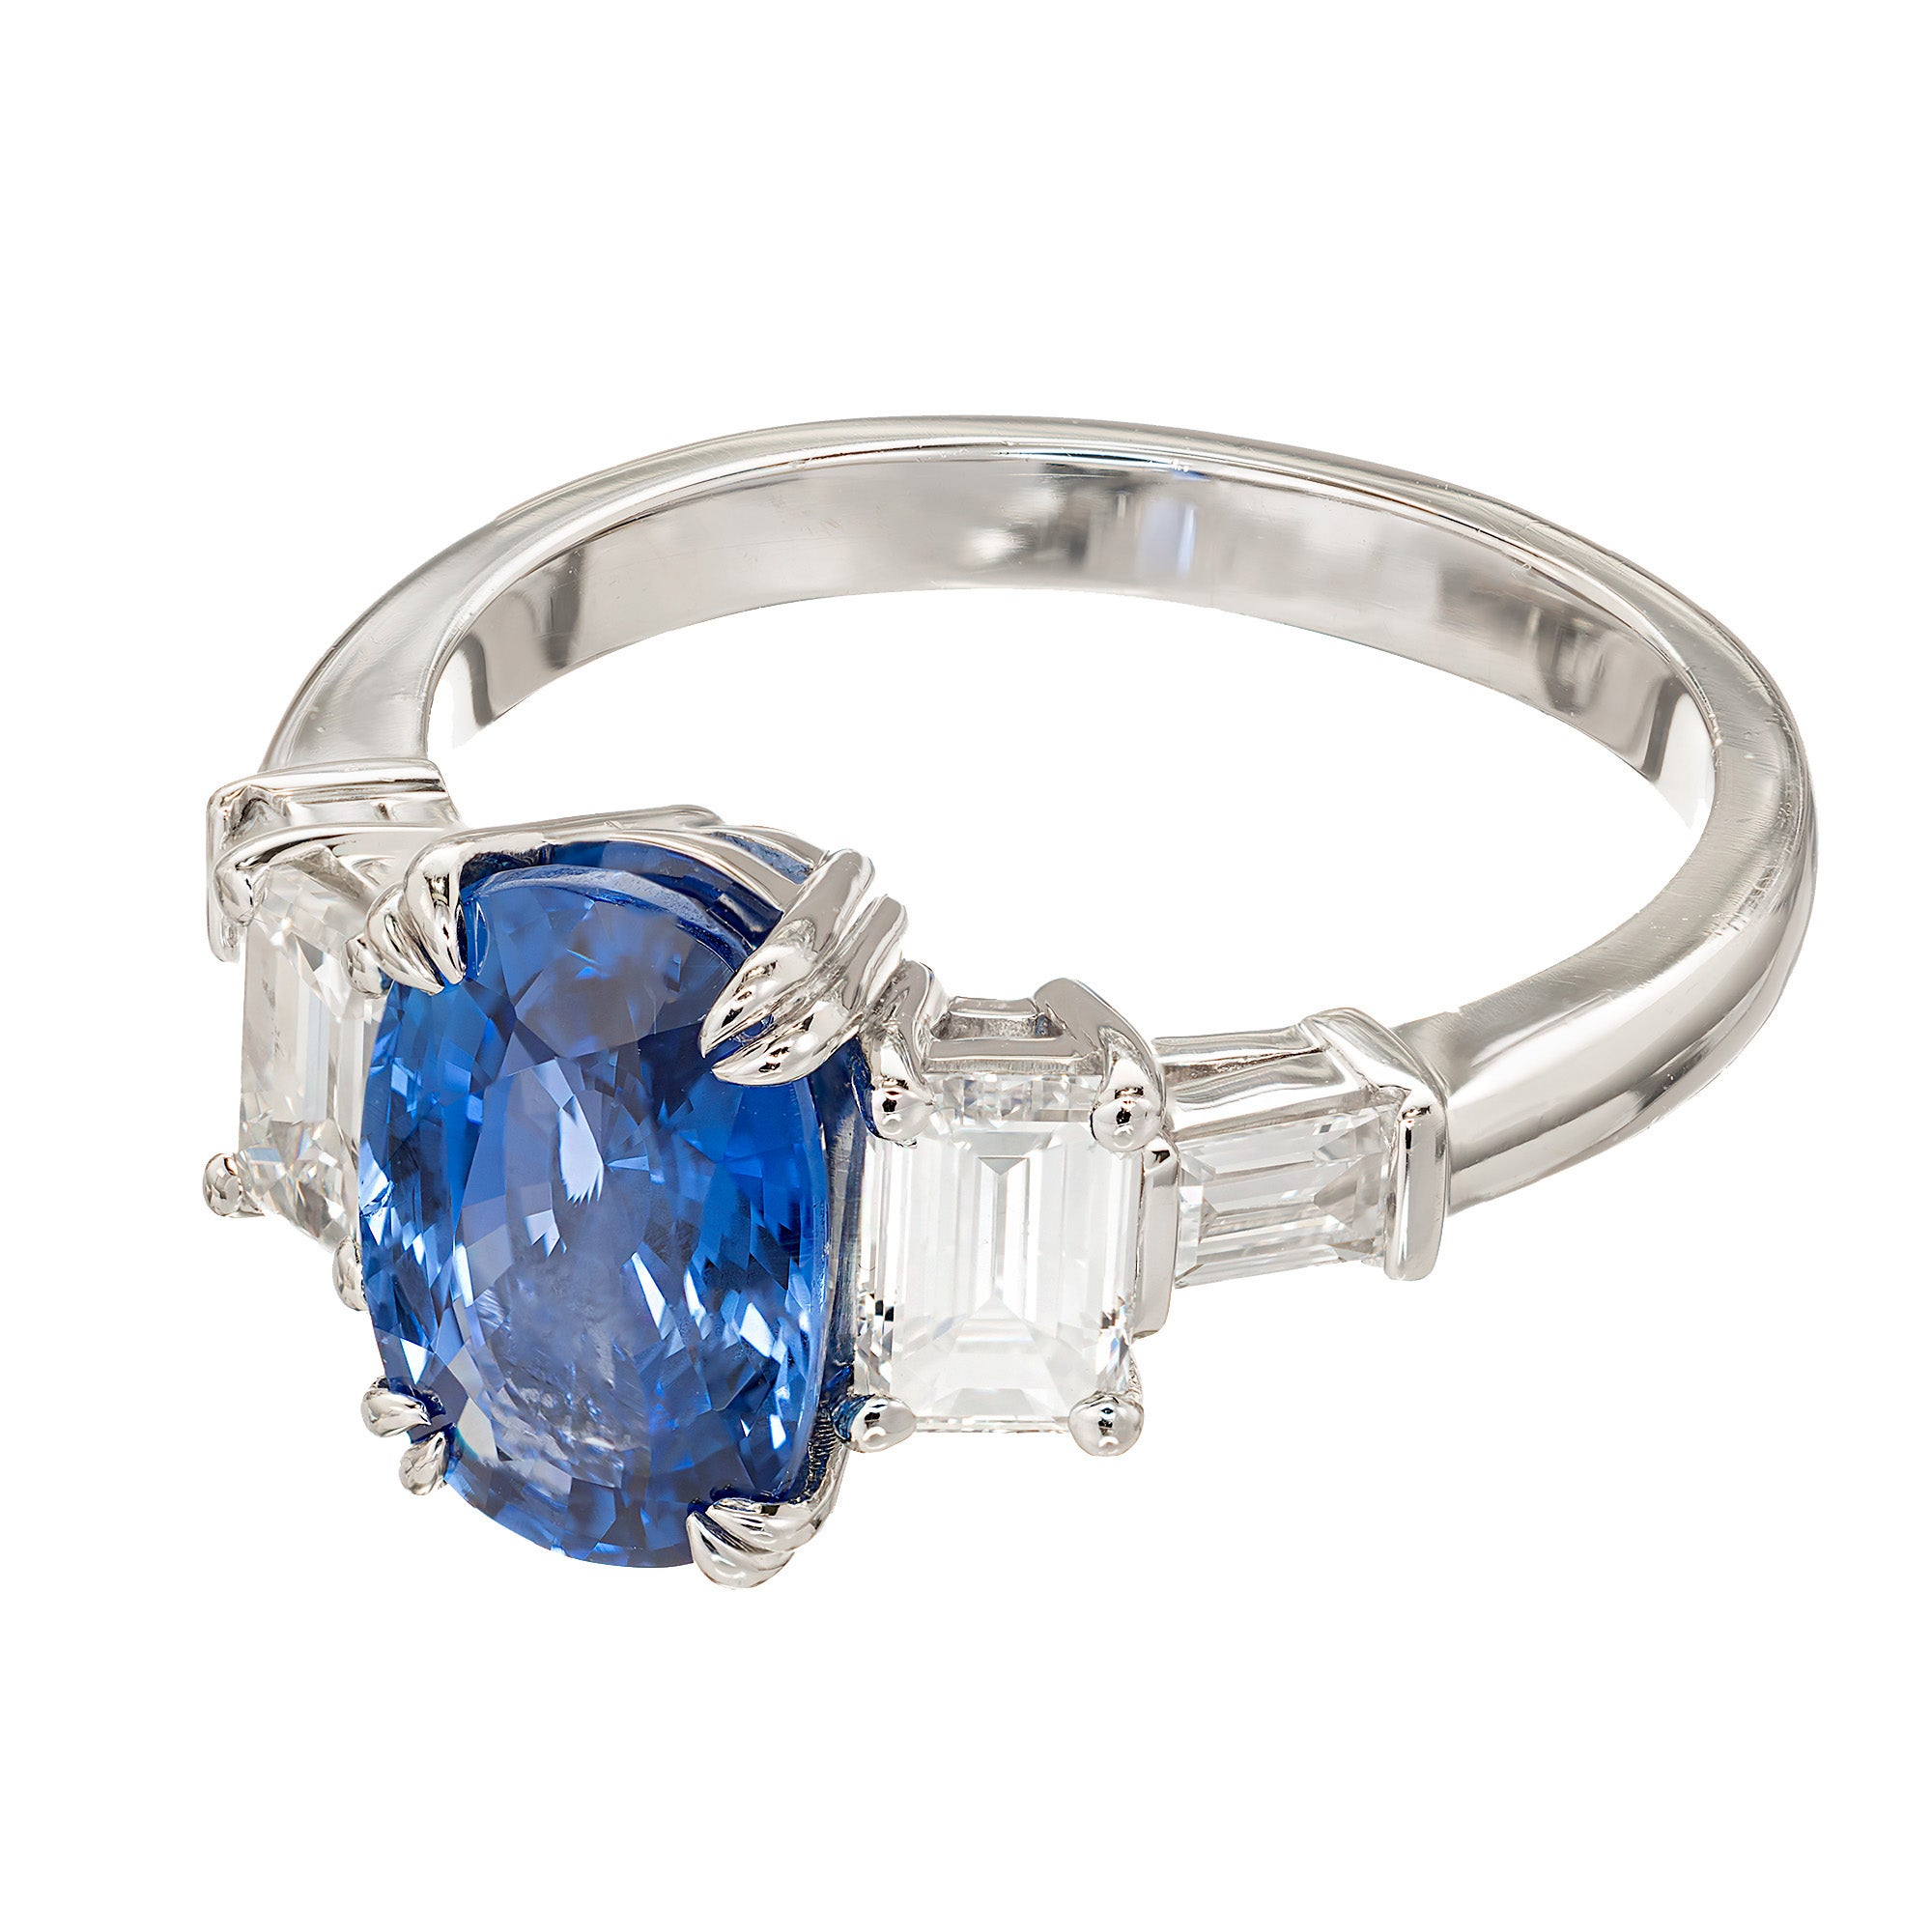 jewelry women lyst mirage infinity designer white in blue sapphire save s gold ring hueb diamond